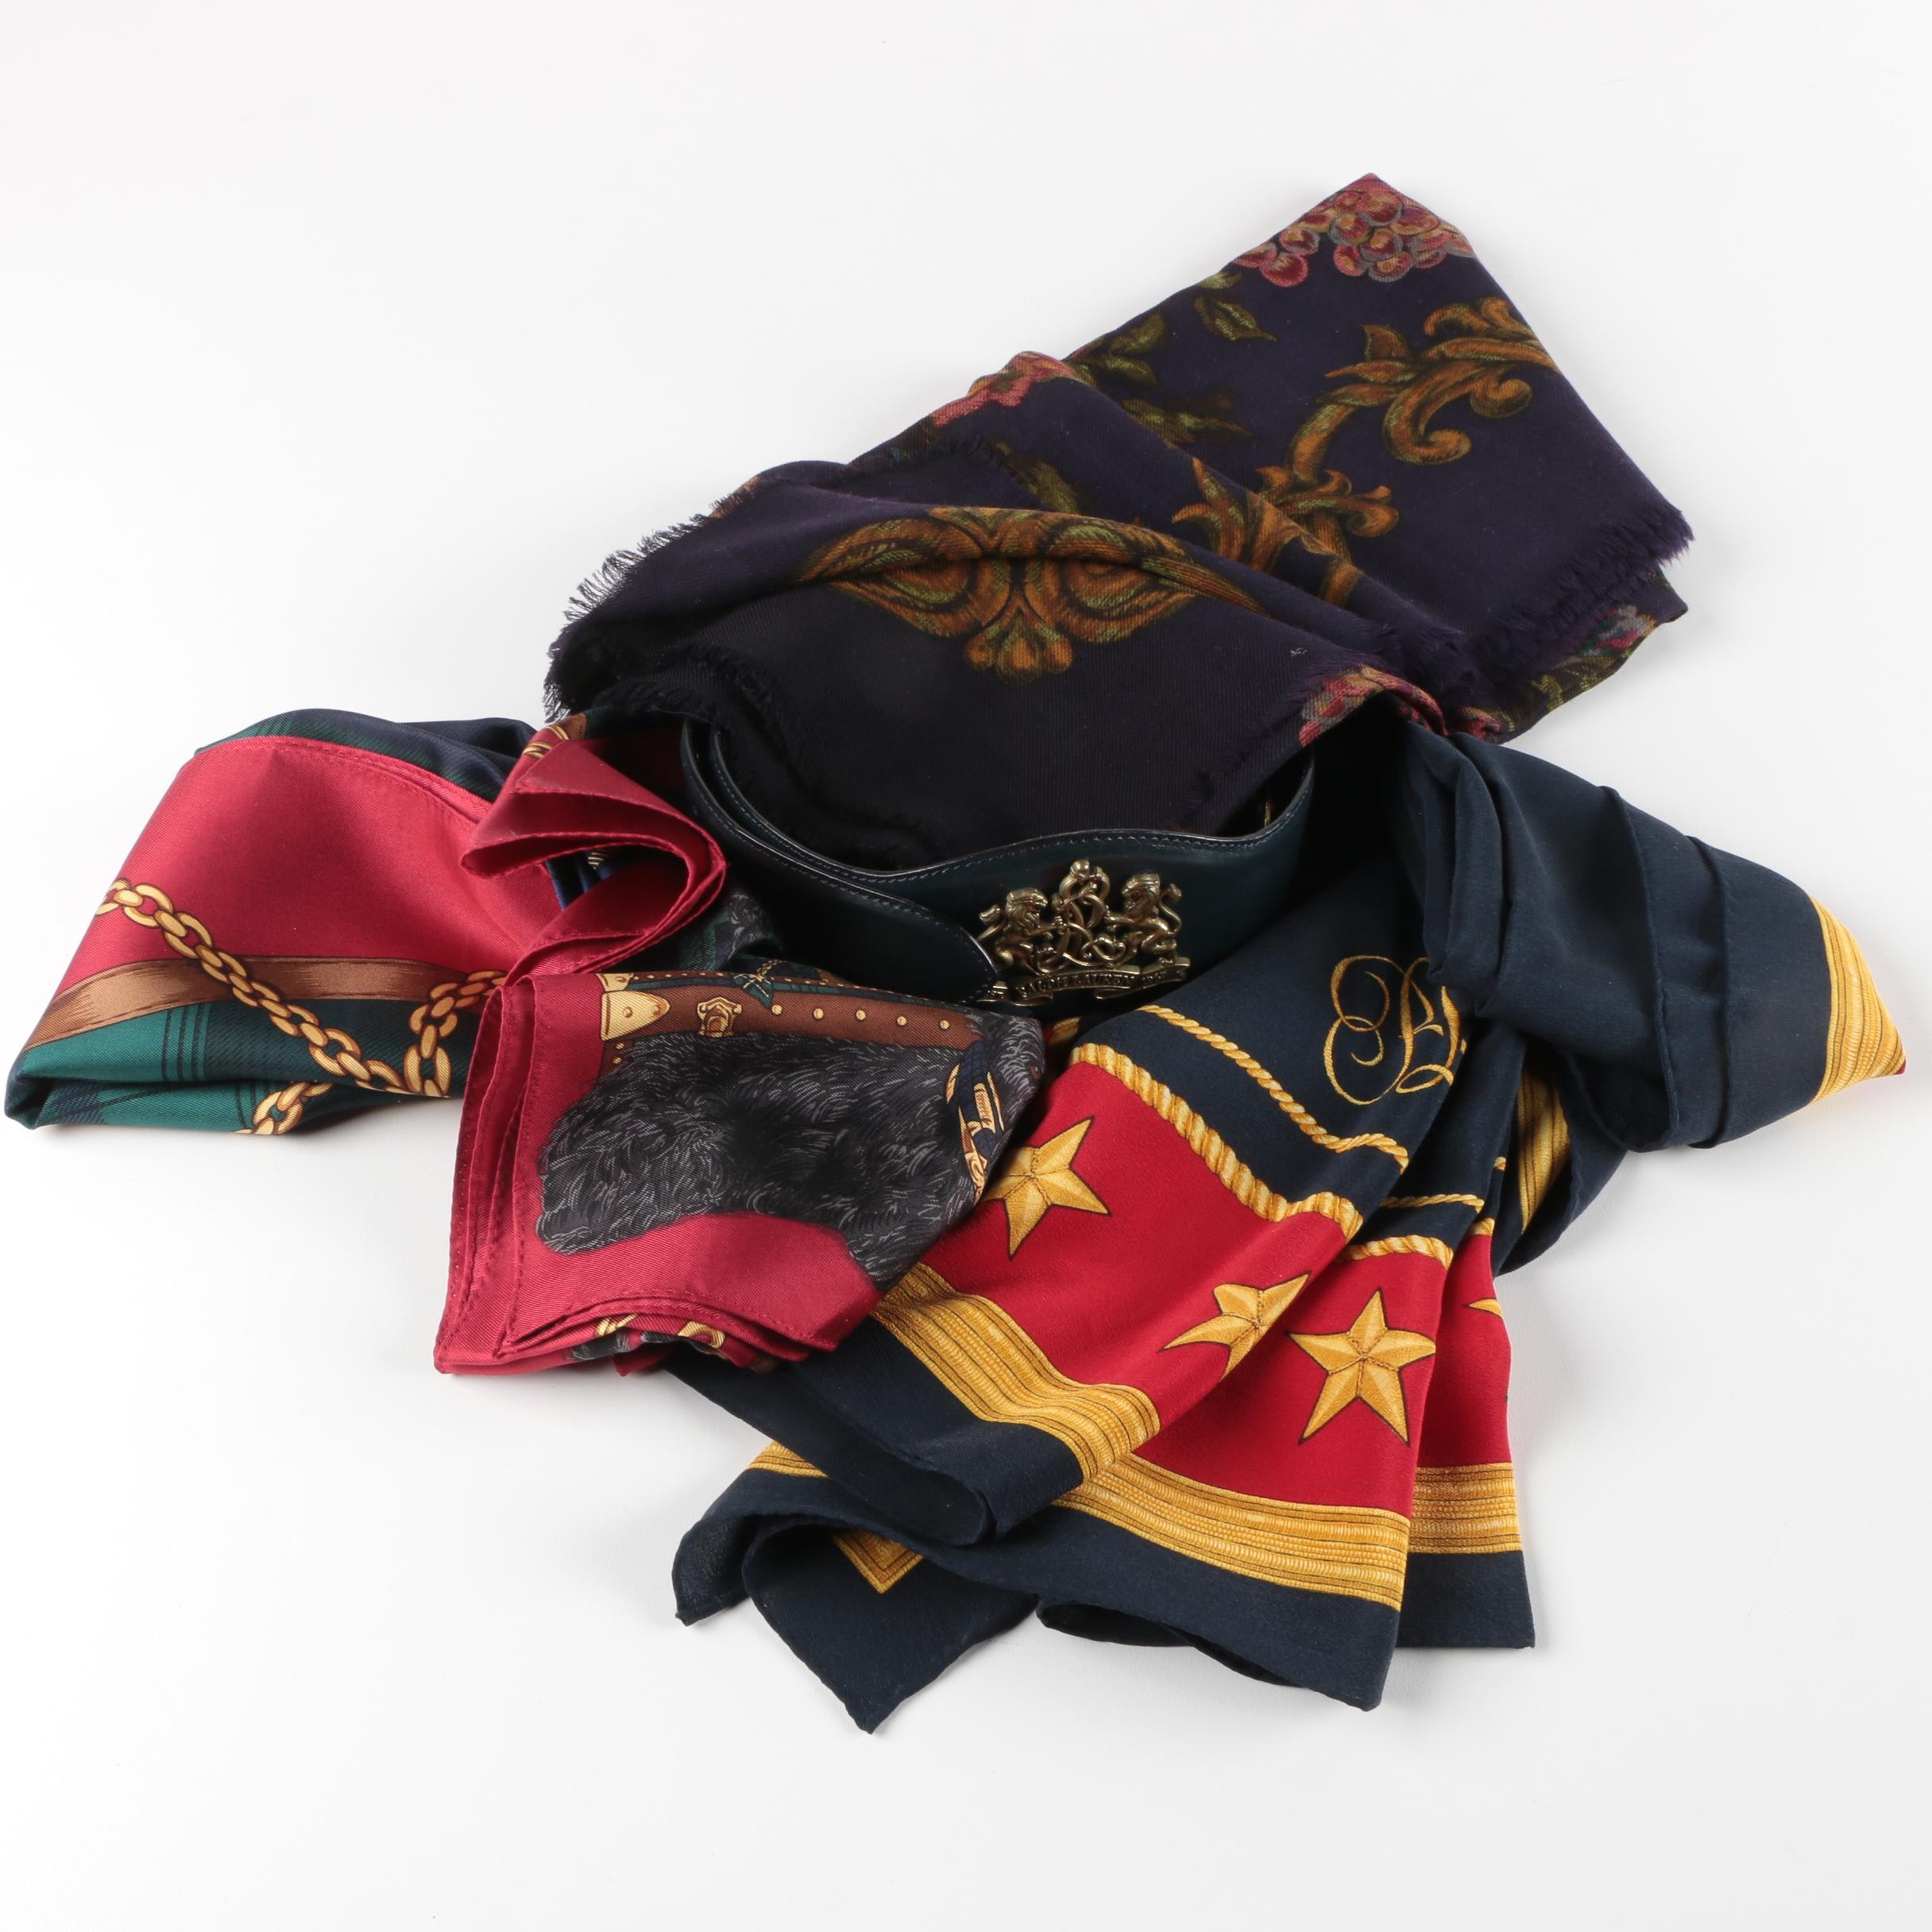 Ralph Lauren Scarves and Leather Belt